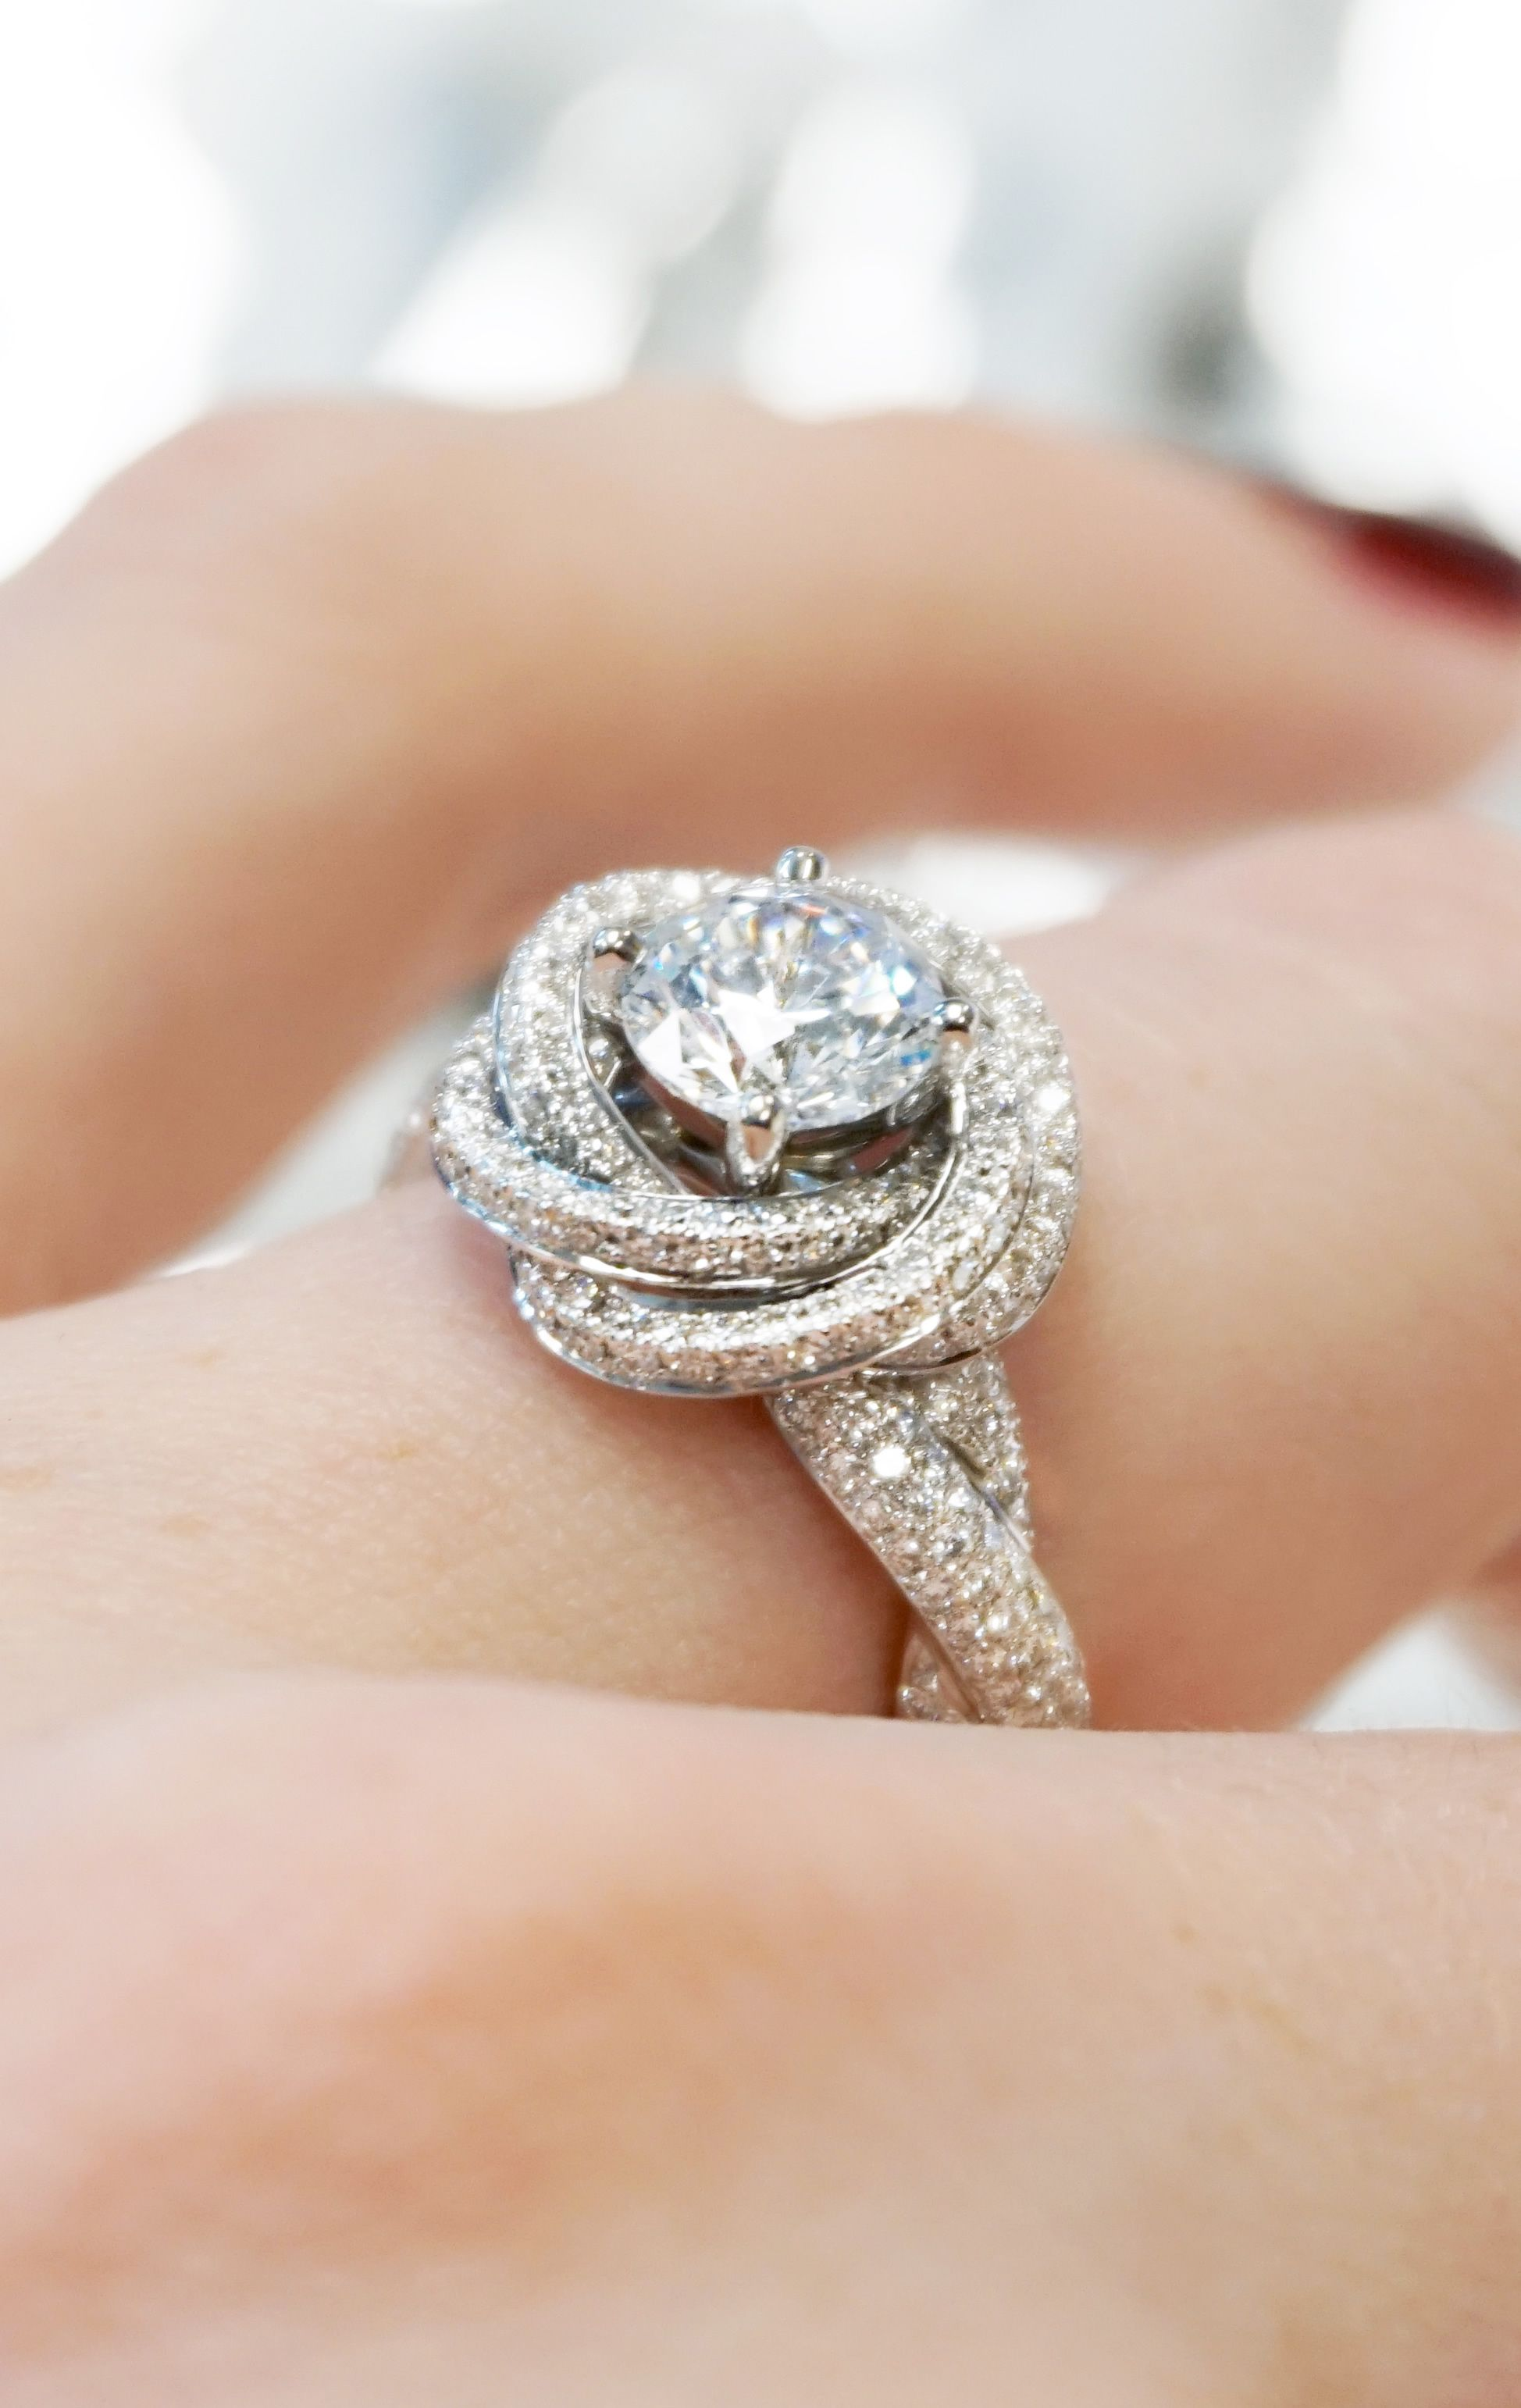 rings style unique wedding lugaro flower togethe engagement